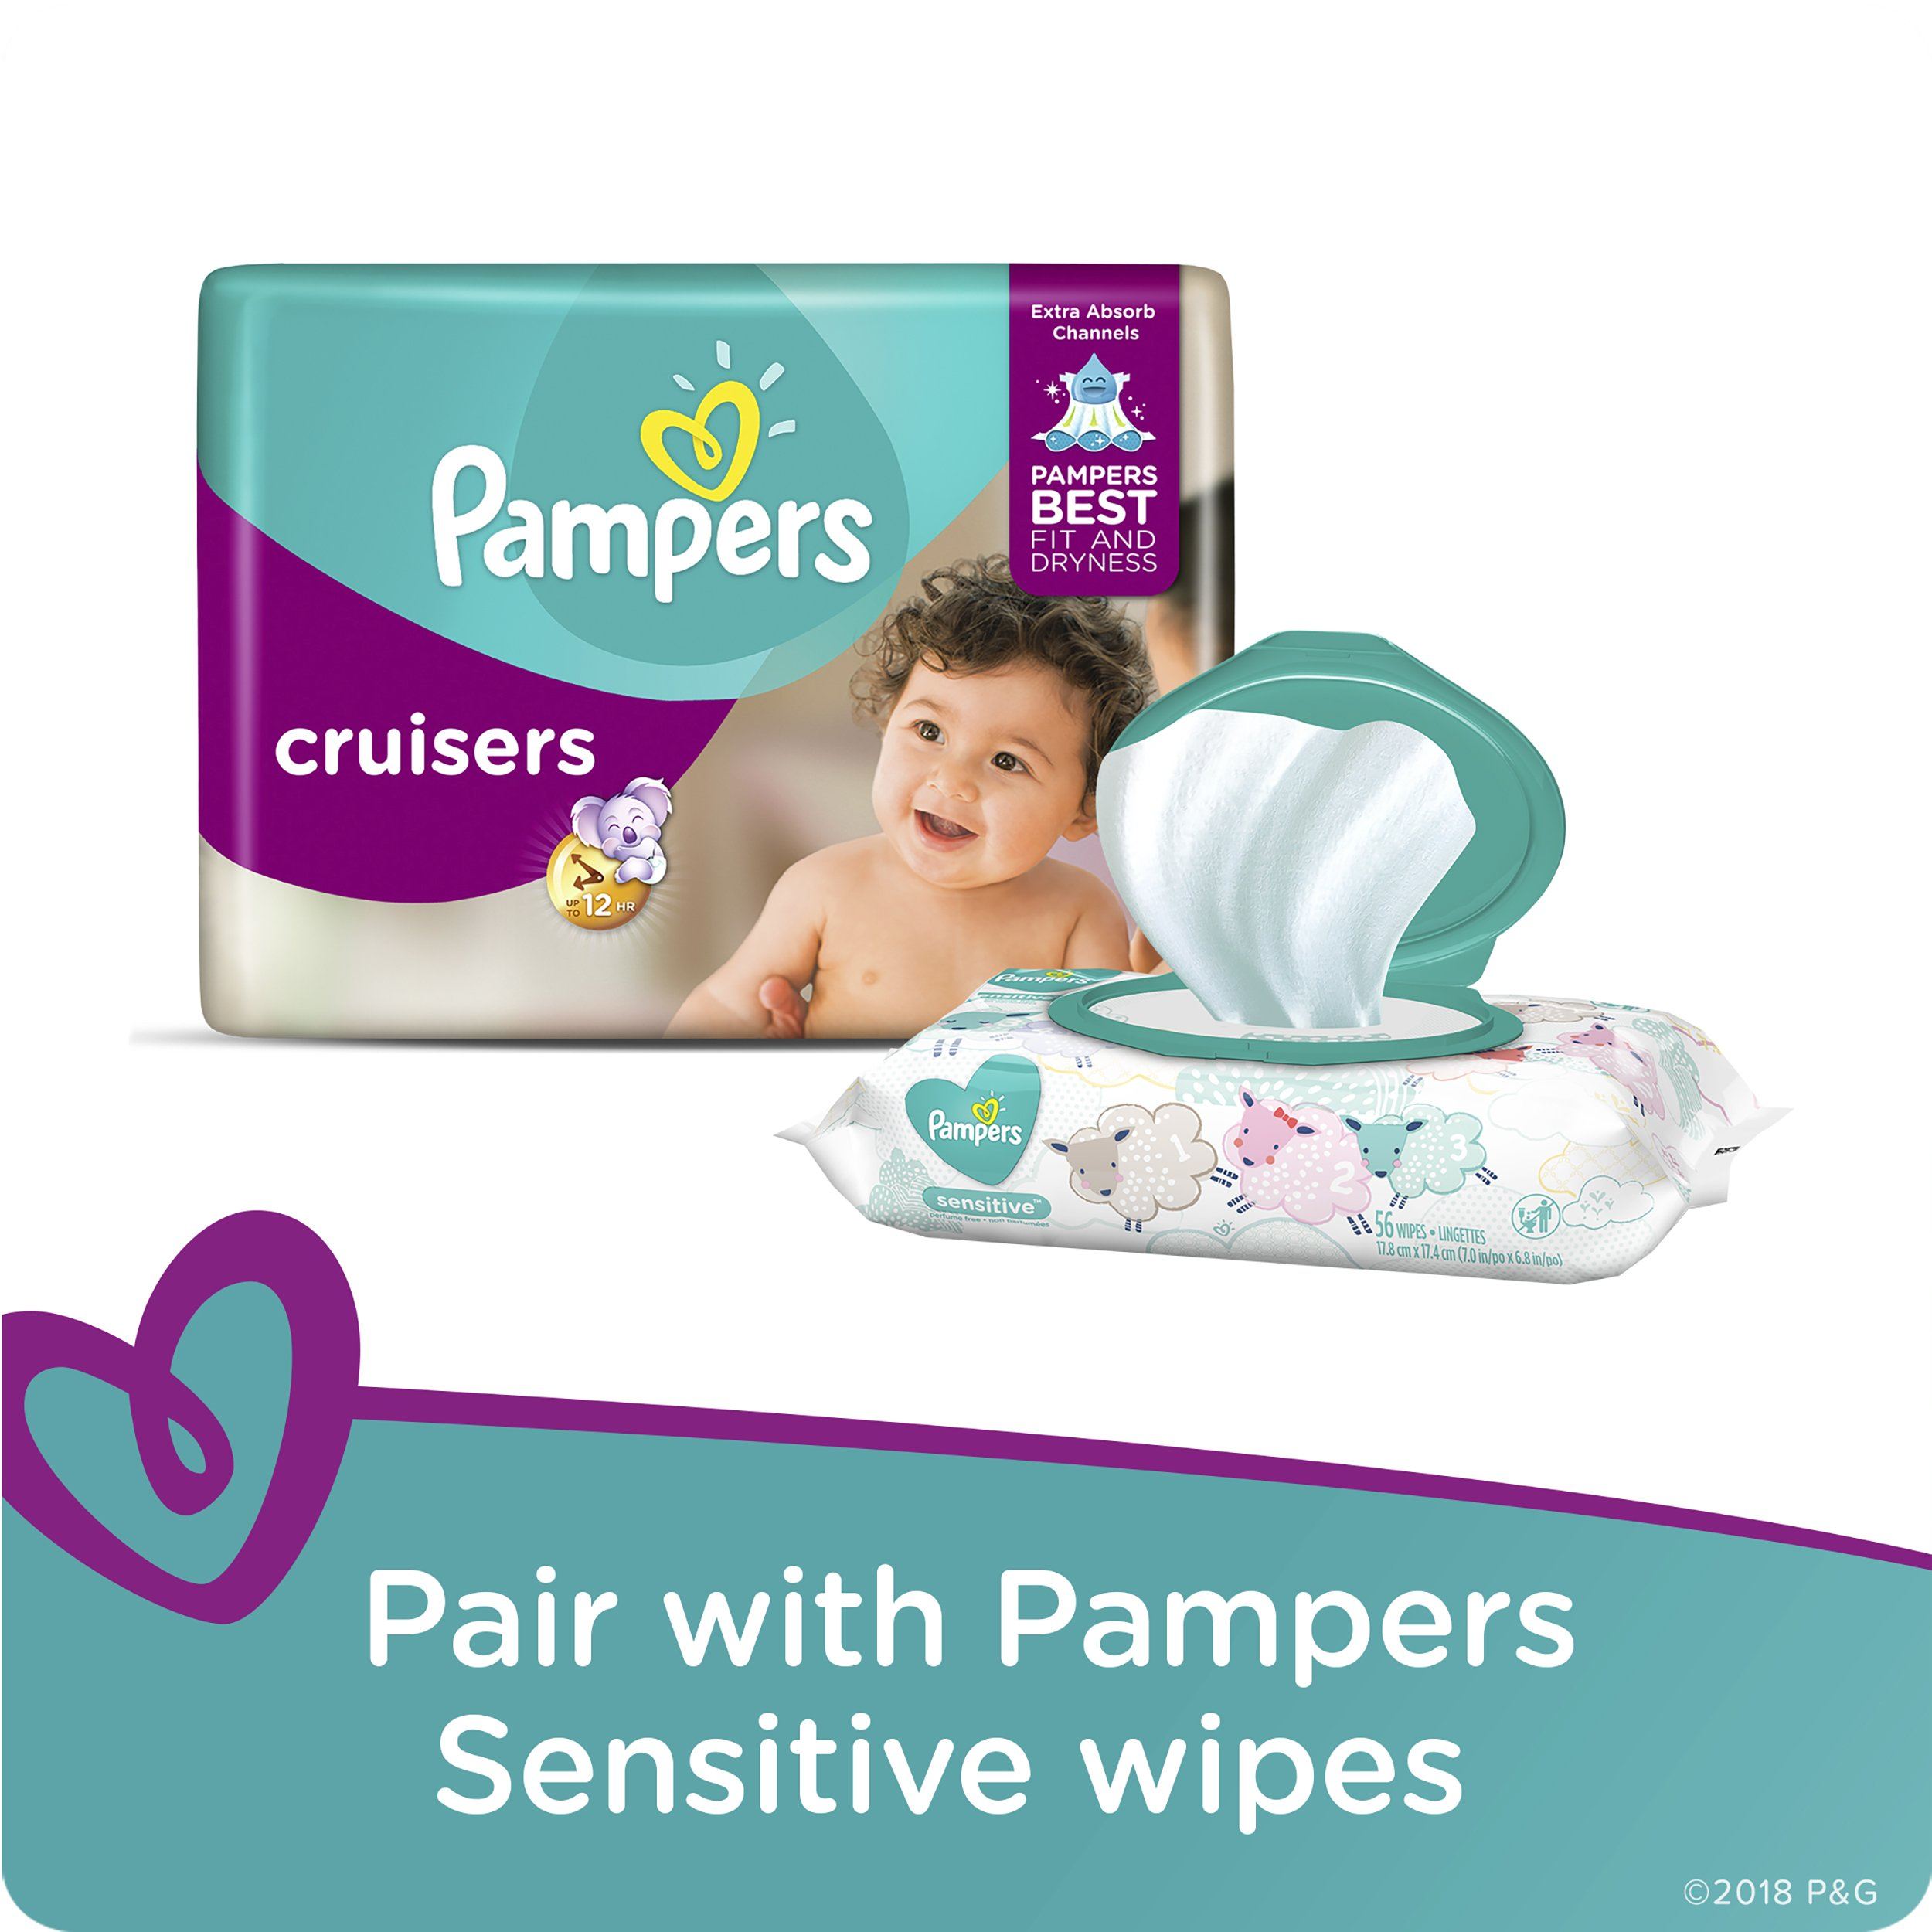 Pampers Cruisers Disposable Diapers Size 6, 108 Count by Pampers (Image #8)